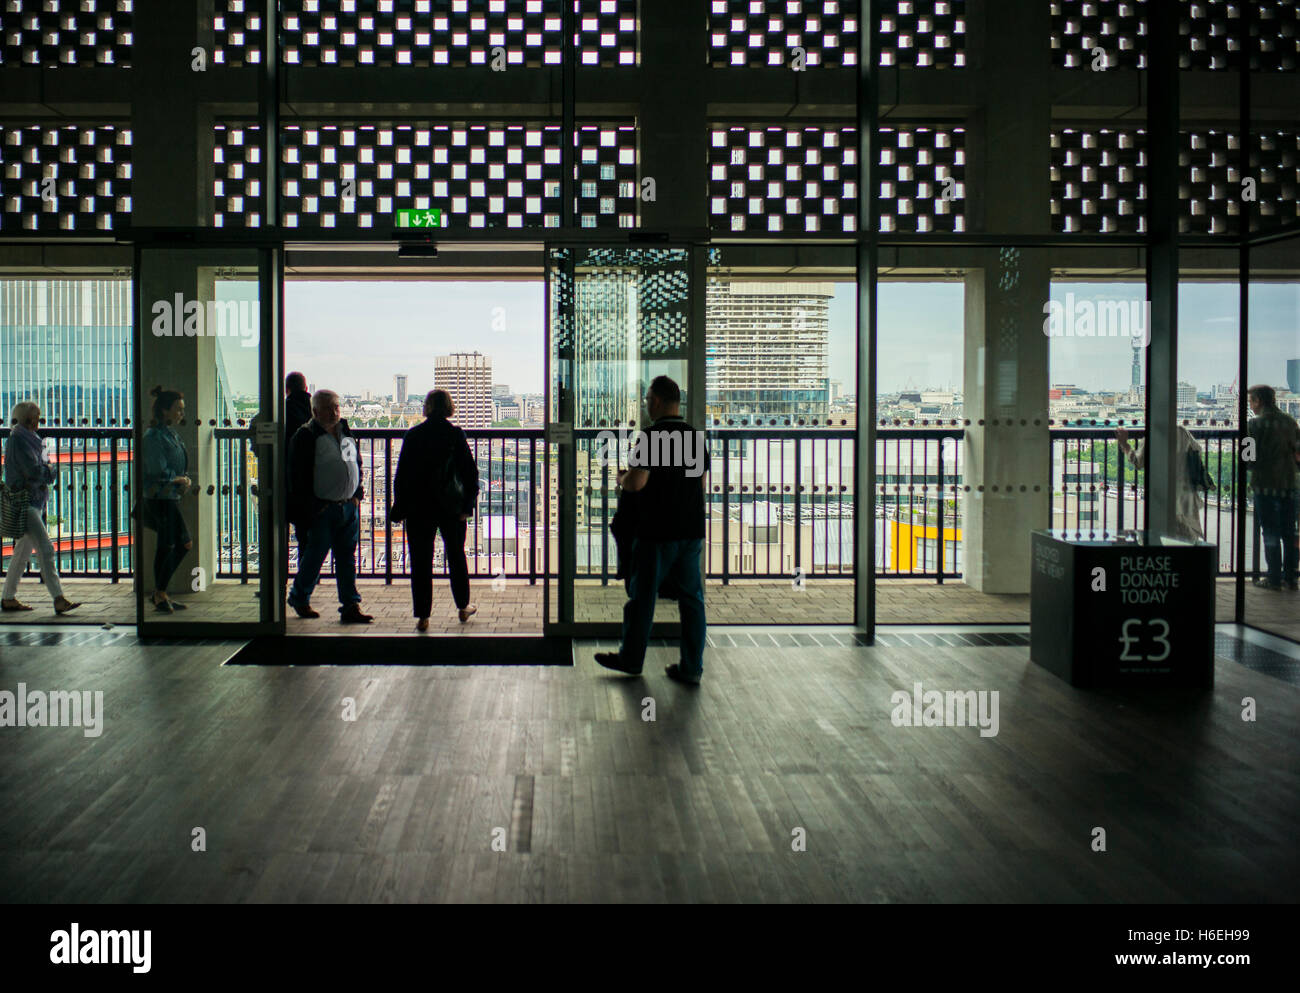 Tate modern extension terrace with views out over  London skyline,sightseers viewing platform ,gallery, - Stock Image